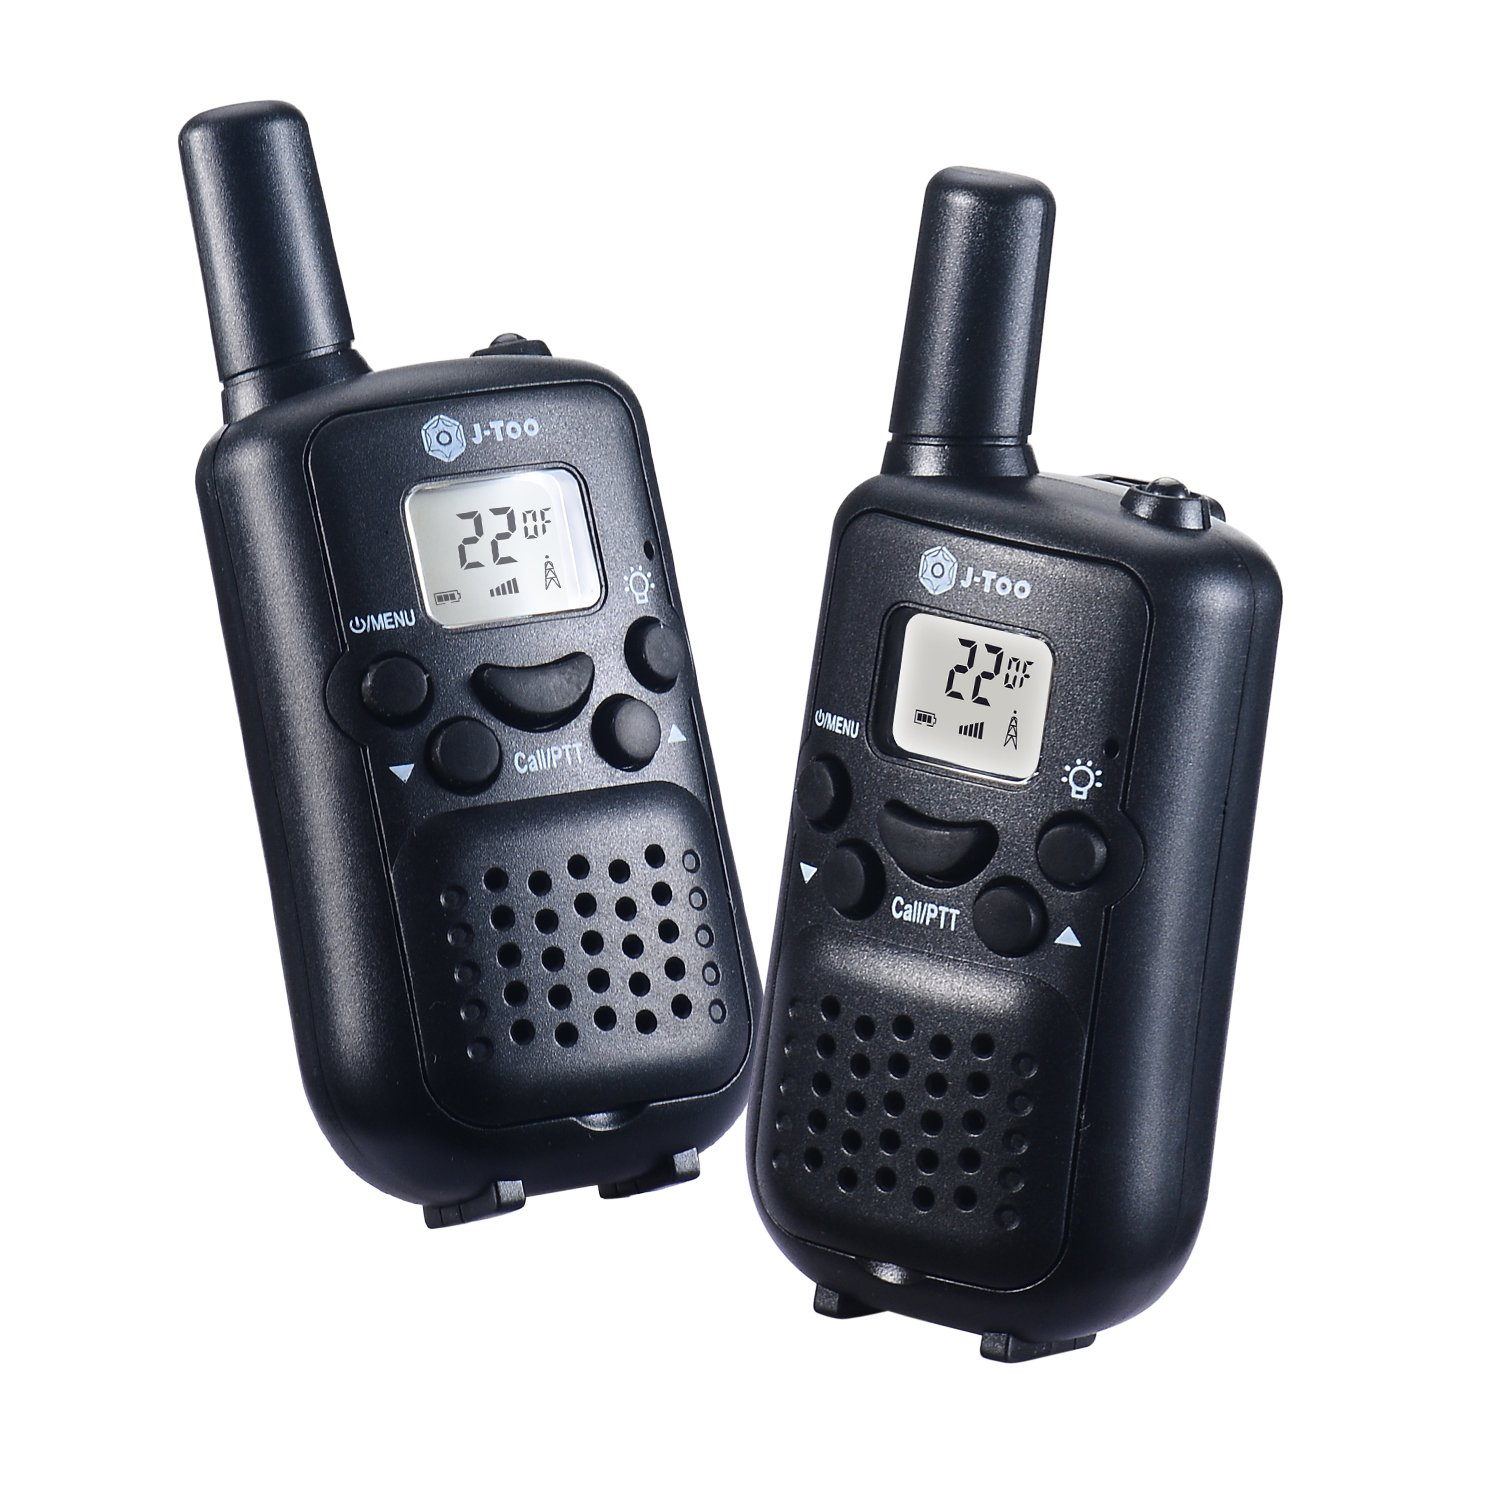 Walkie talkies for kids J-TOO Easy to use 22 Channel FRS/GMRS Two